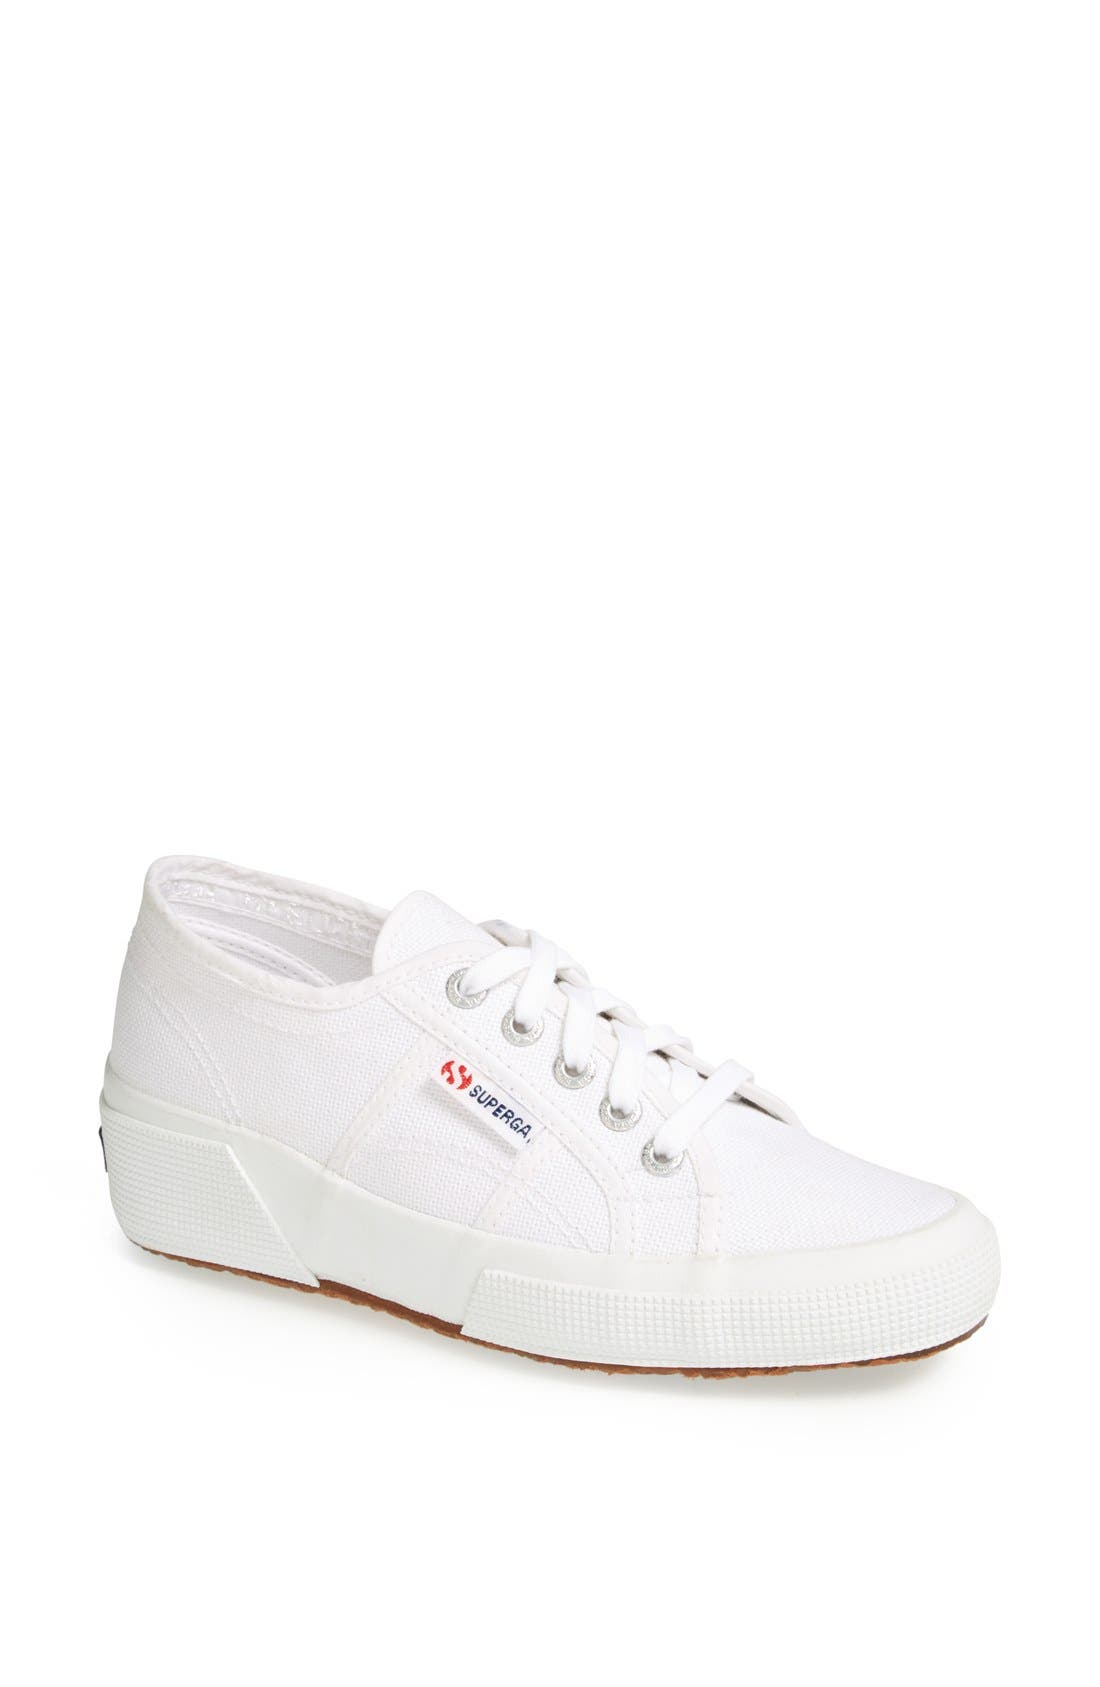 5a3c7c6f4c03 Superga Shoes   Sneakers